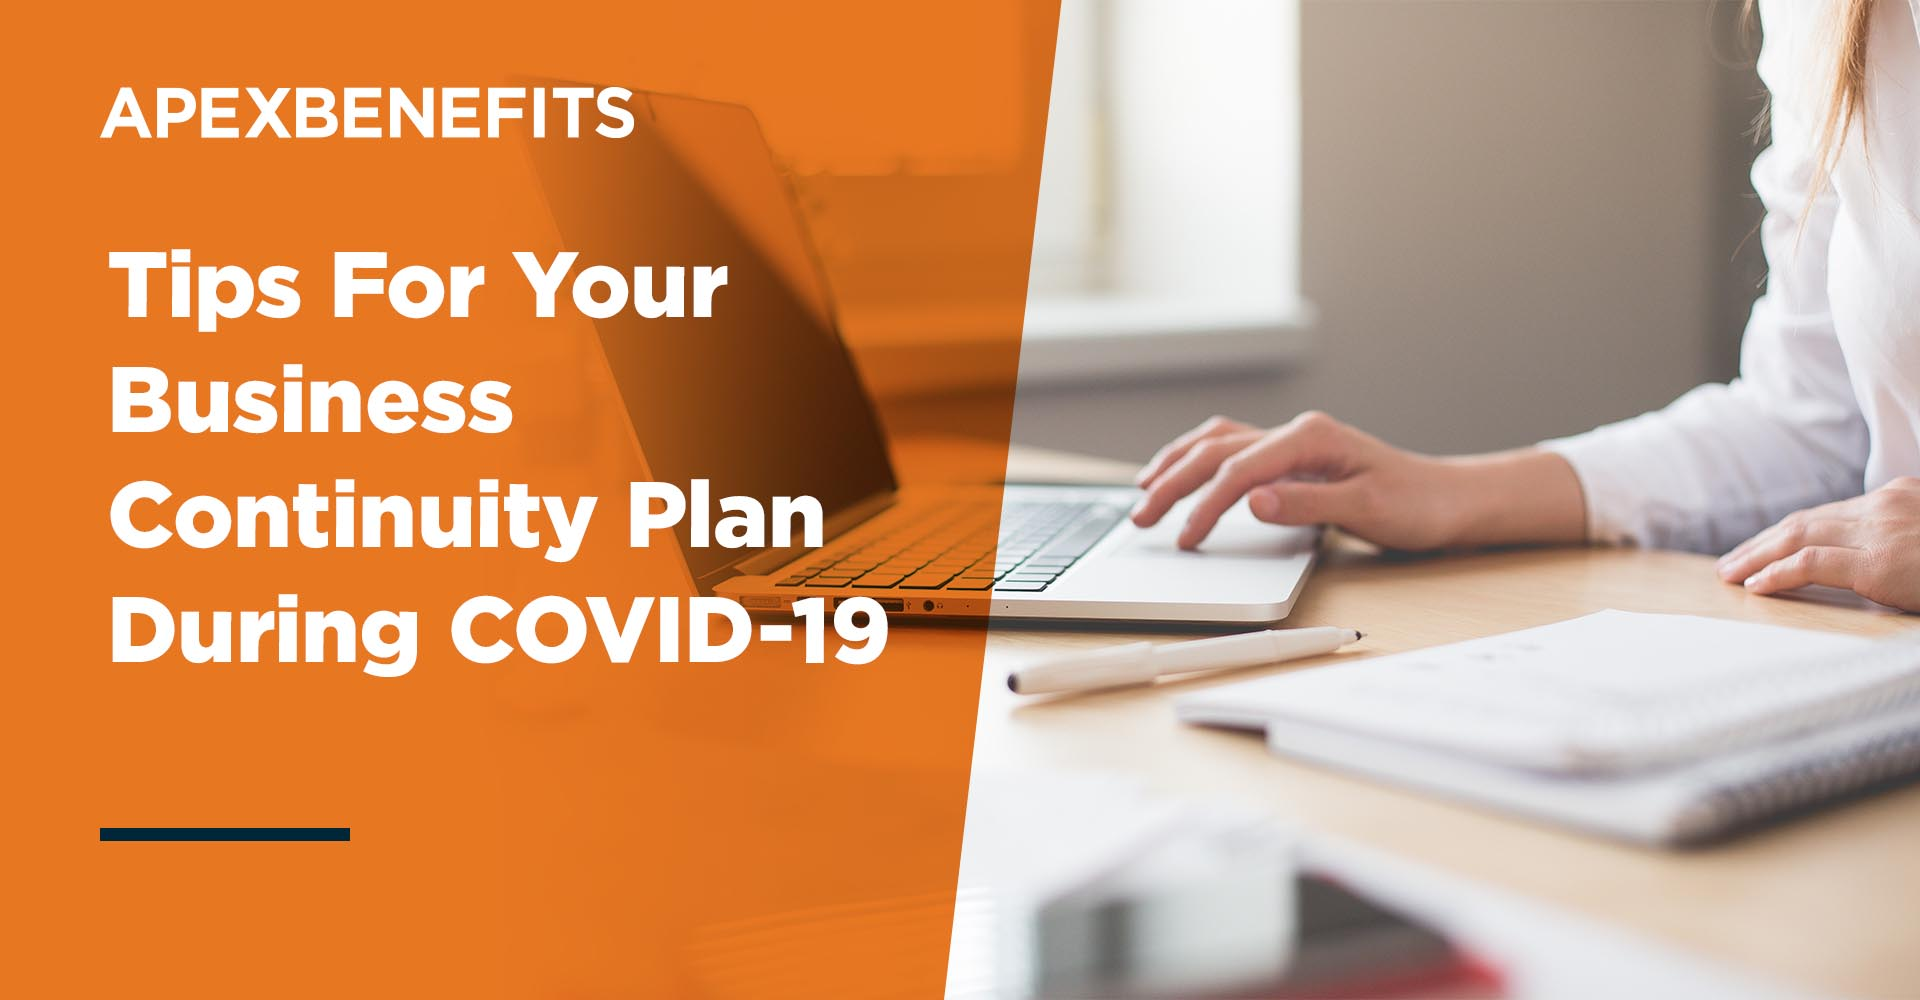 Tips for a Successful Business Continuity Plan During COVID-19